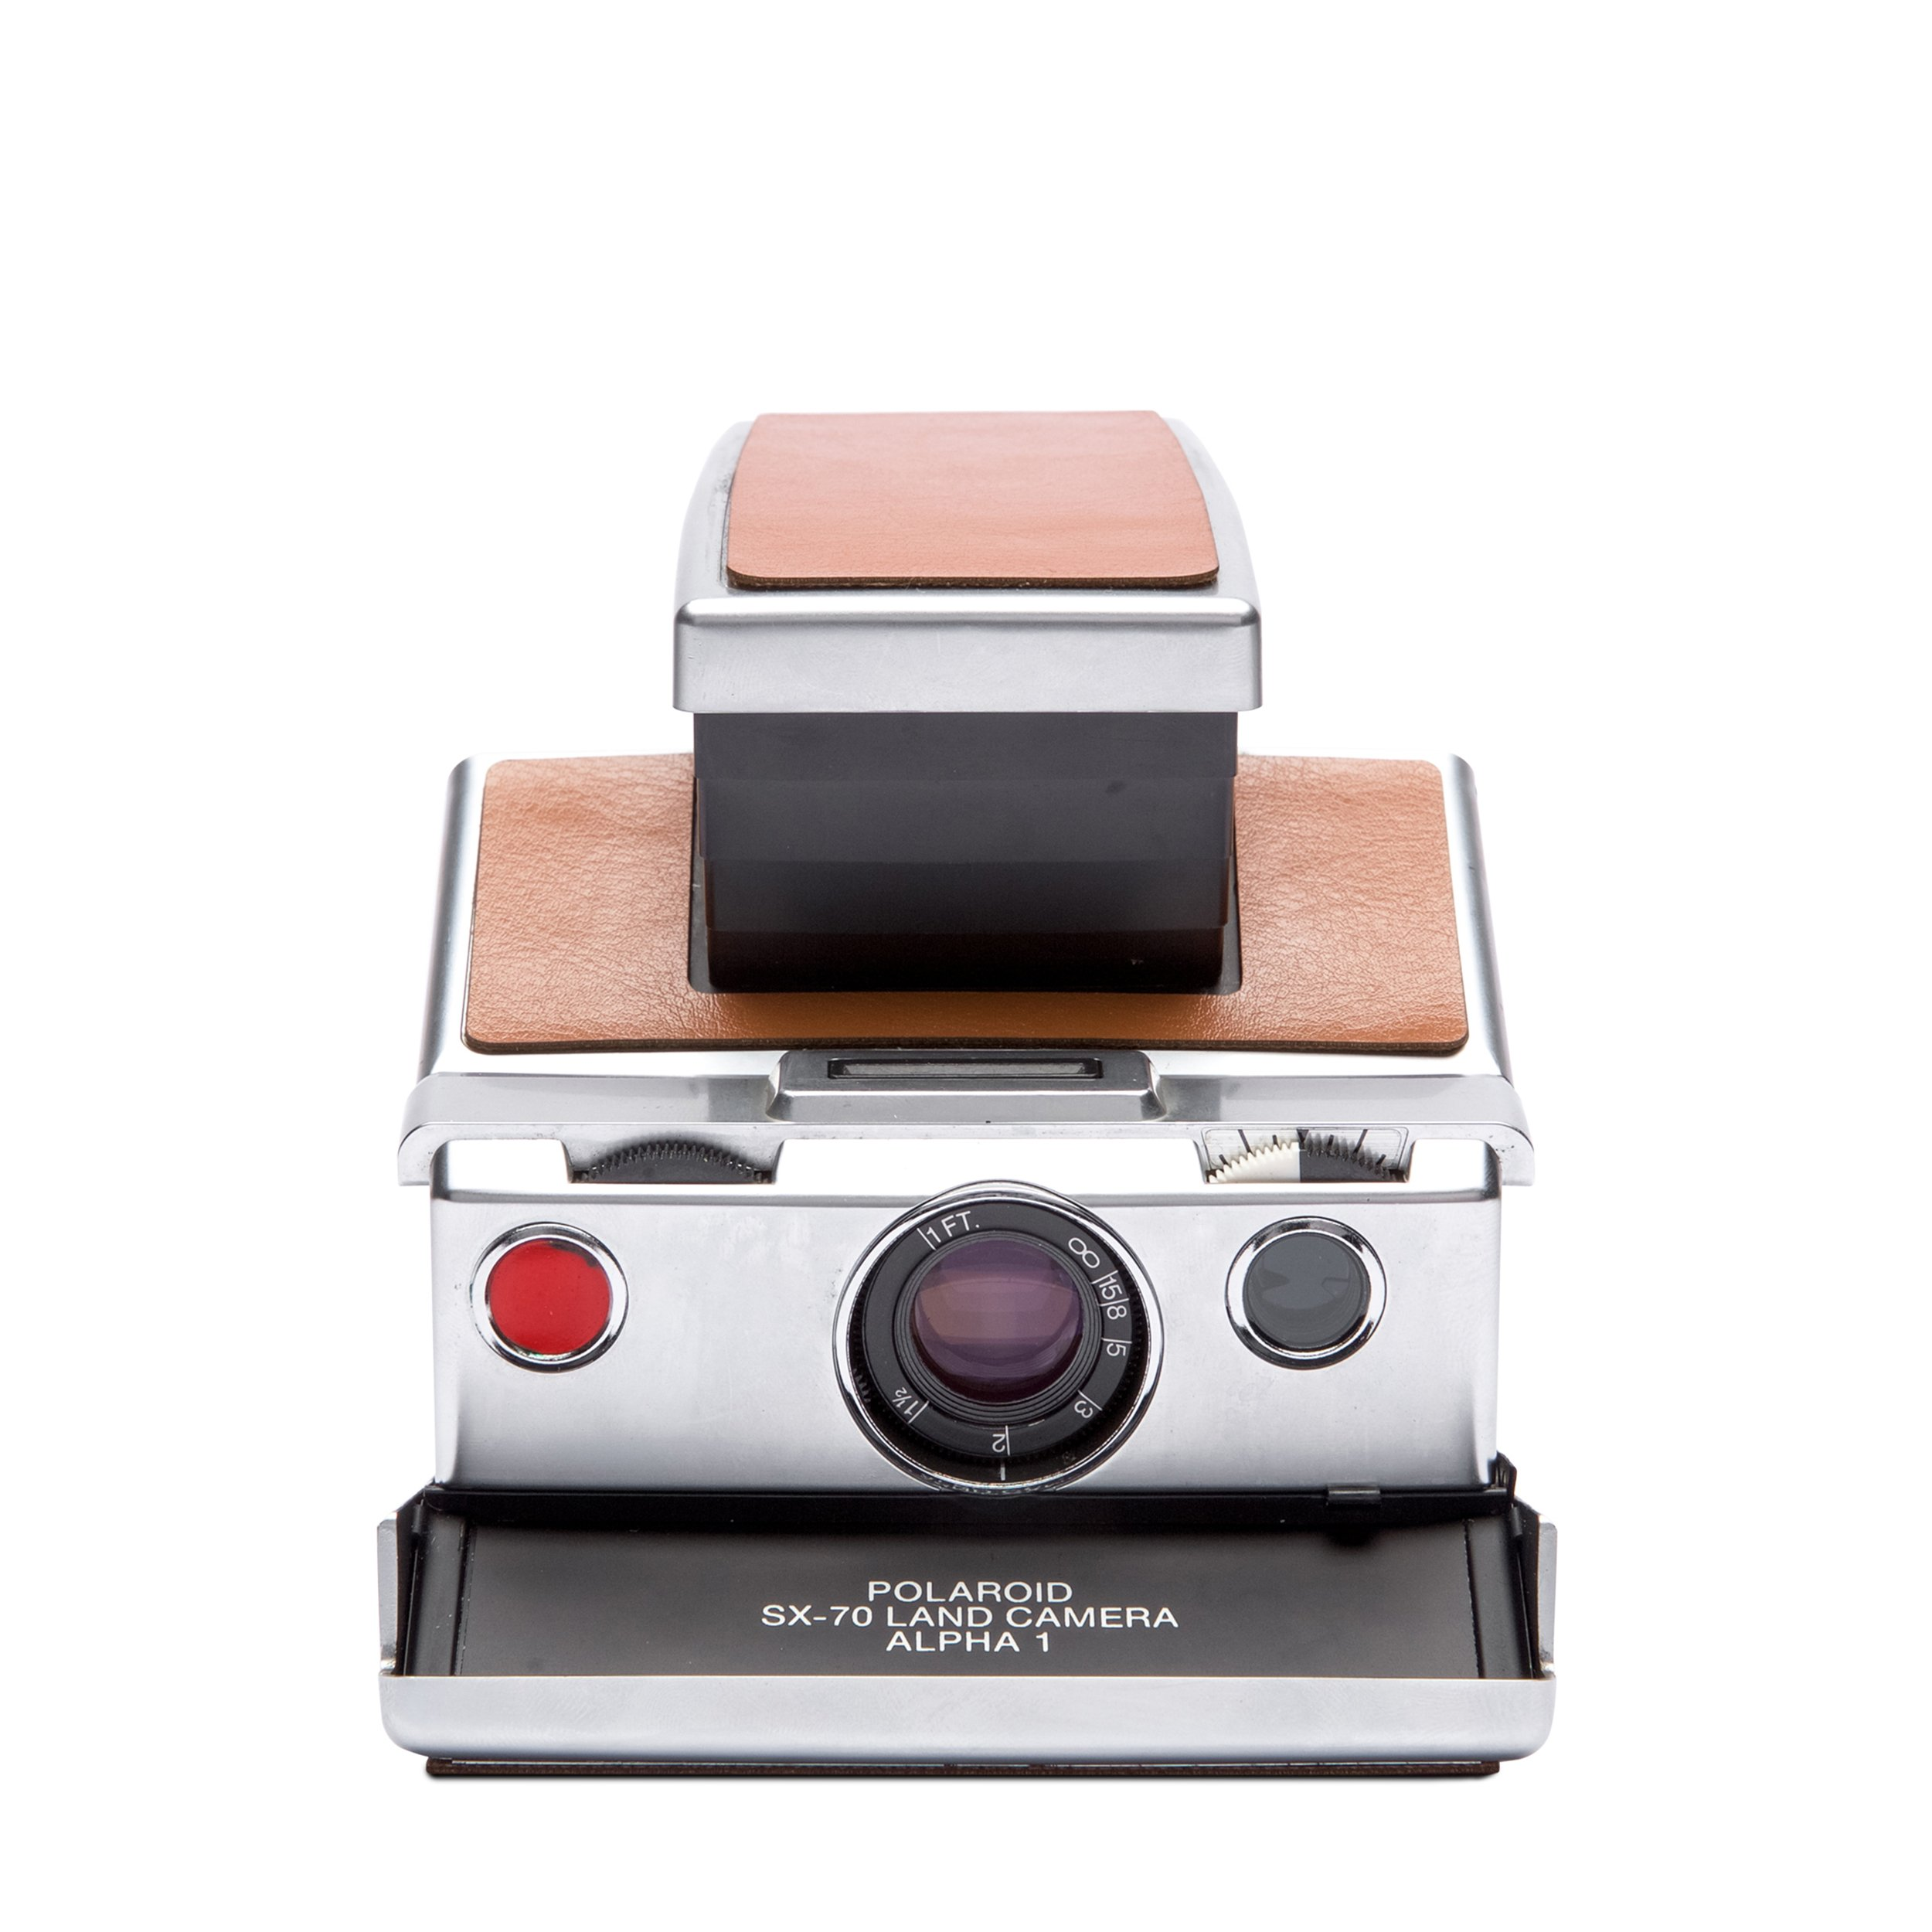 Retro Polaroid SX-70 Camera